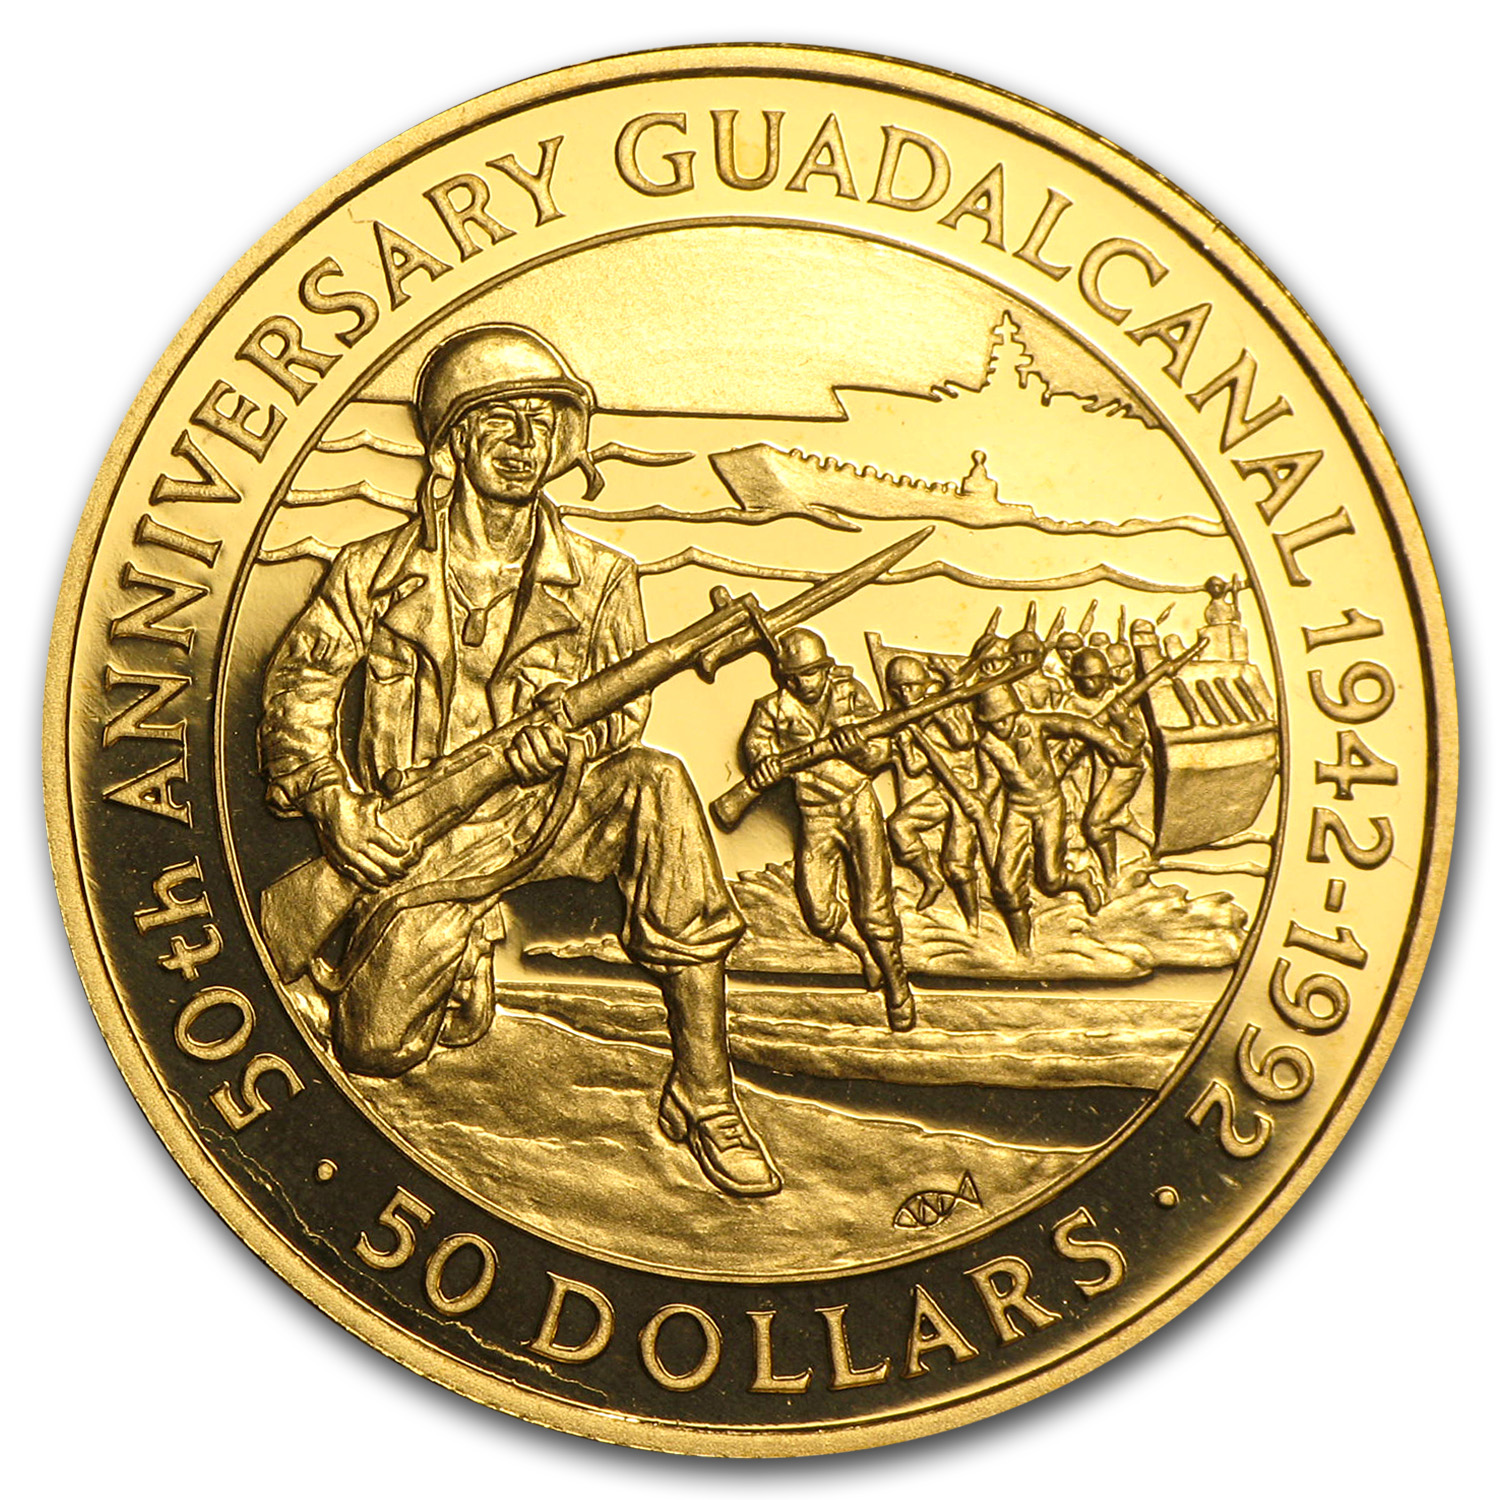 Solomon Islands 1992 $50 Gold Proof Battle of Guadalcanal